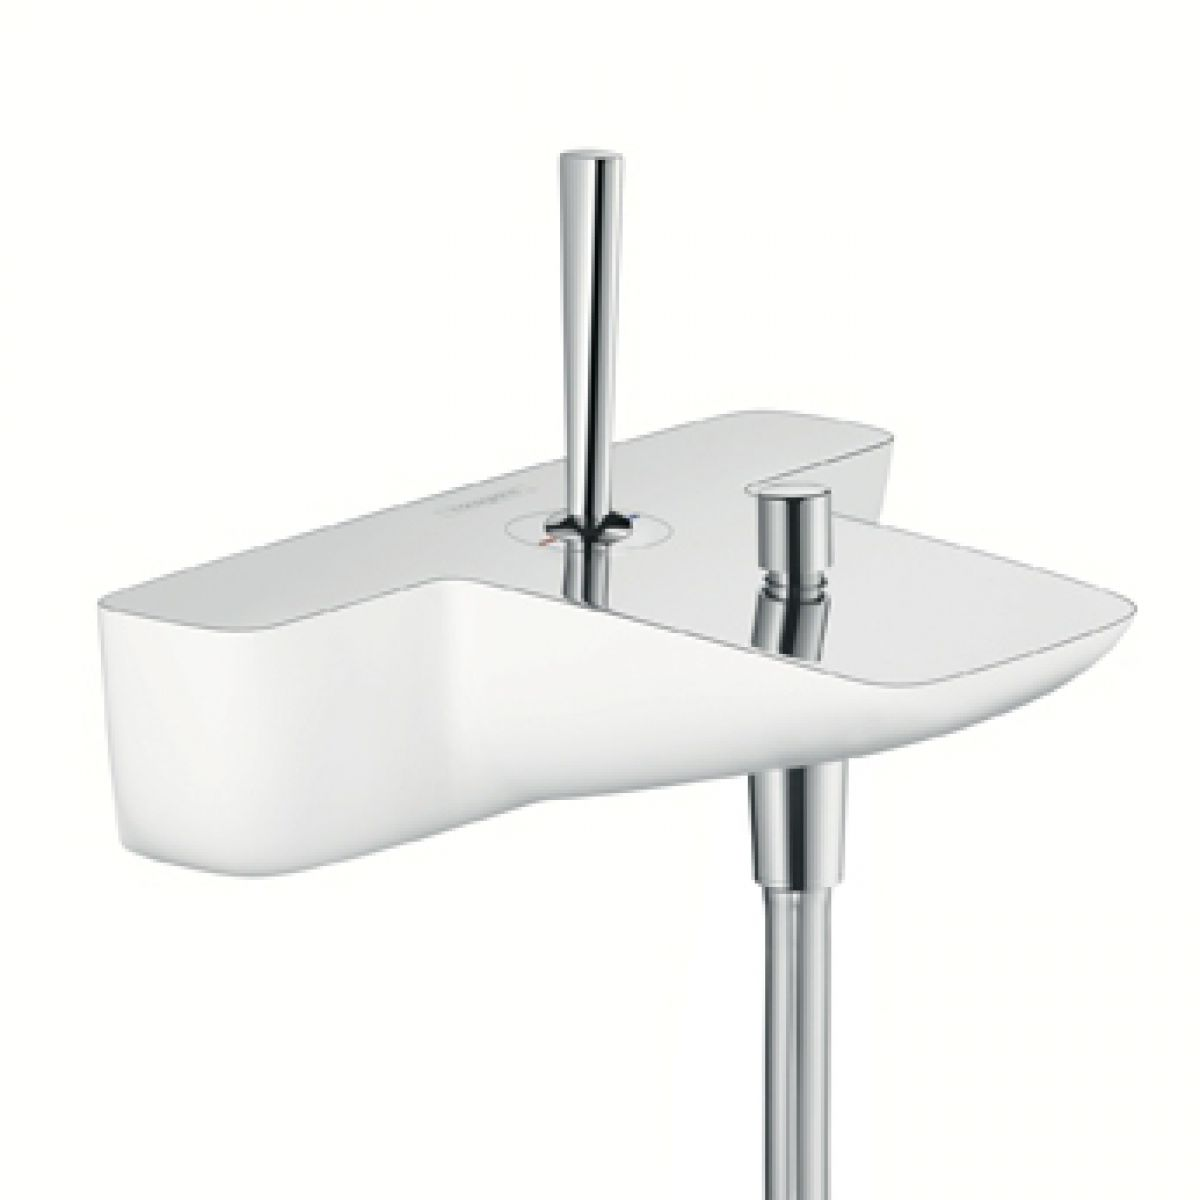 hansgrohe puravida exposed bath shower mixer uk bathrooms. Black Bedroom Furniture Sets. Home Design Ideas